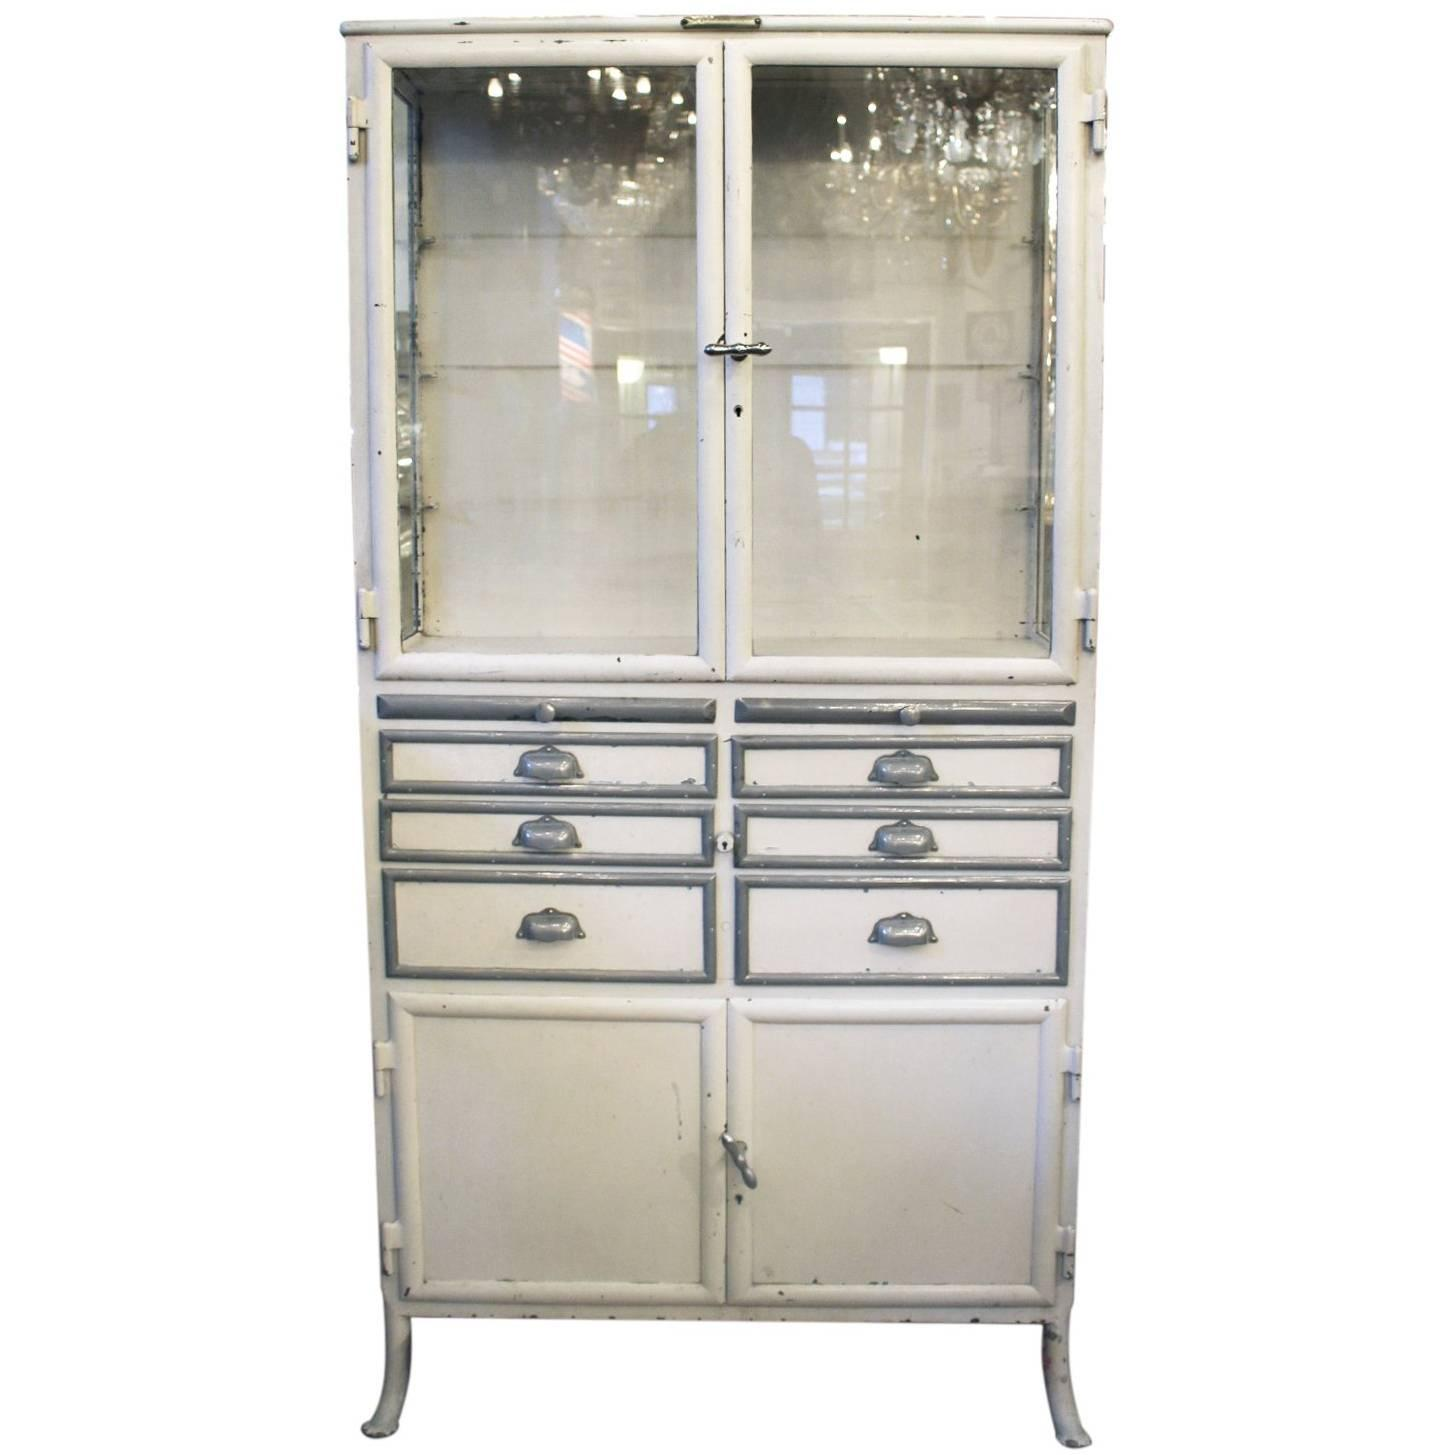 Charming 1890s, French, Dental Medical Cabinet With Drawers And Glass Shelves For  Sale At 1stdibs